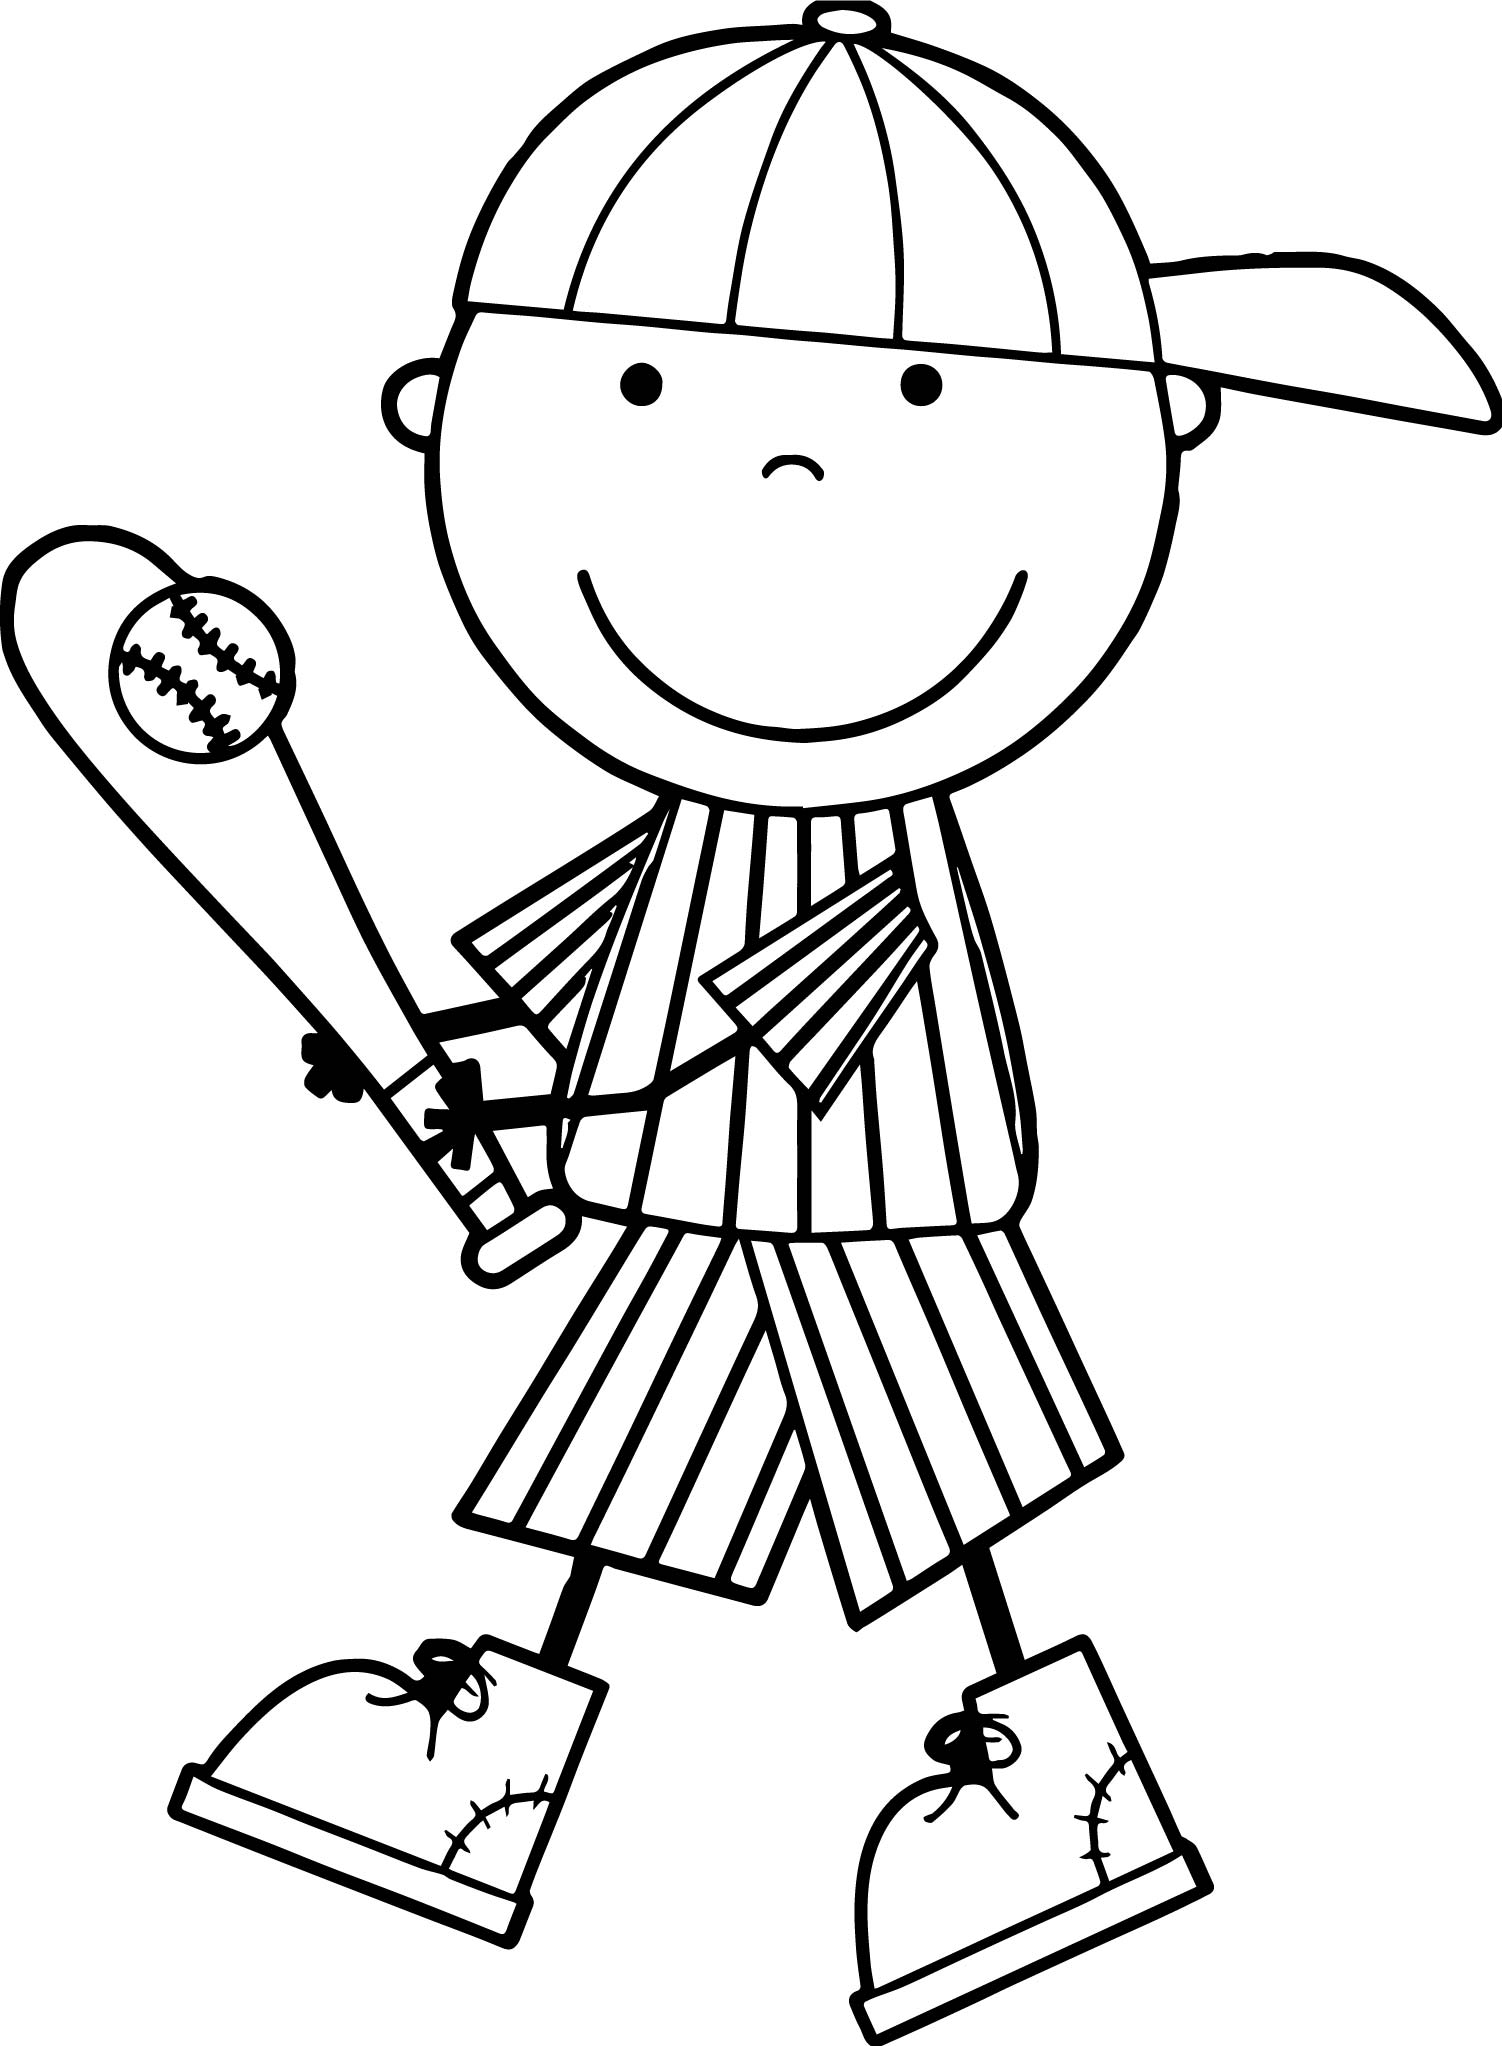 Cute kids playing baseball coloring page for Baseball coloring pages for kids